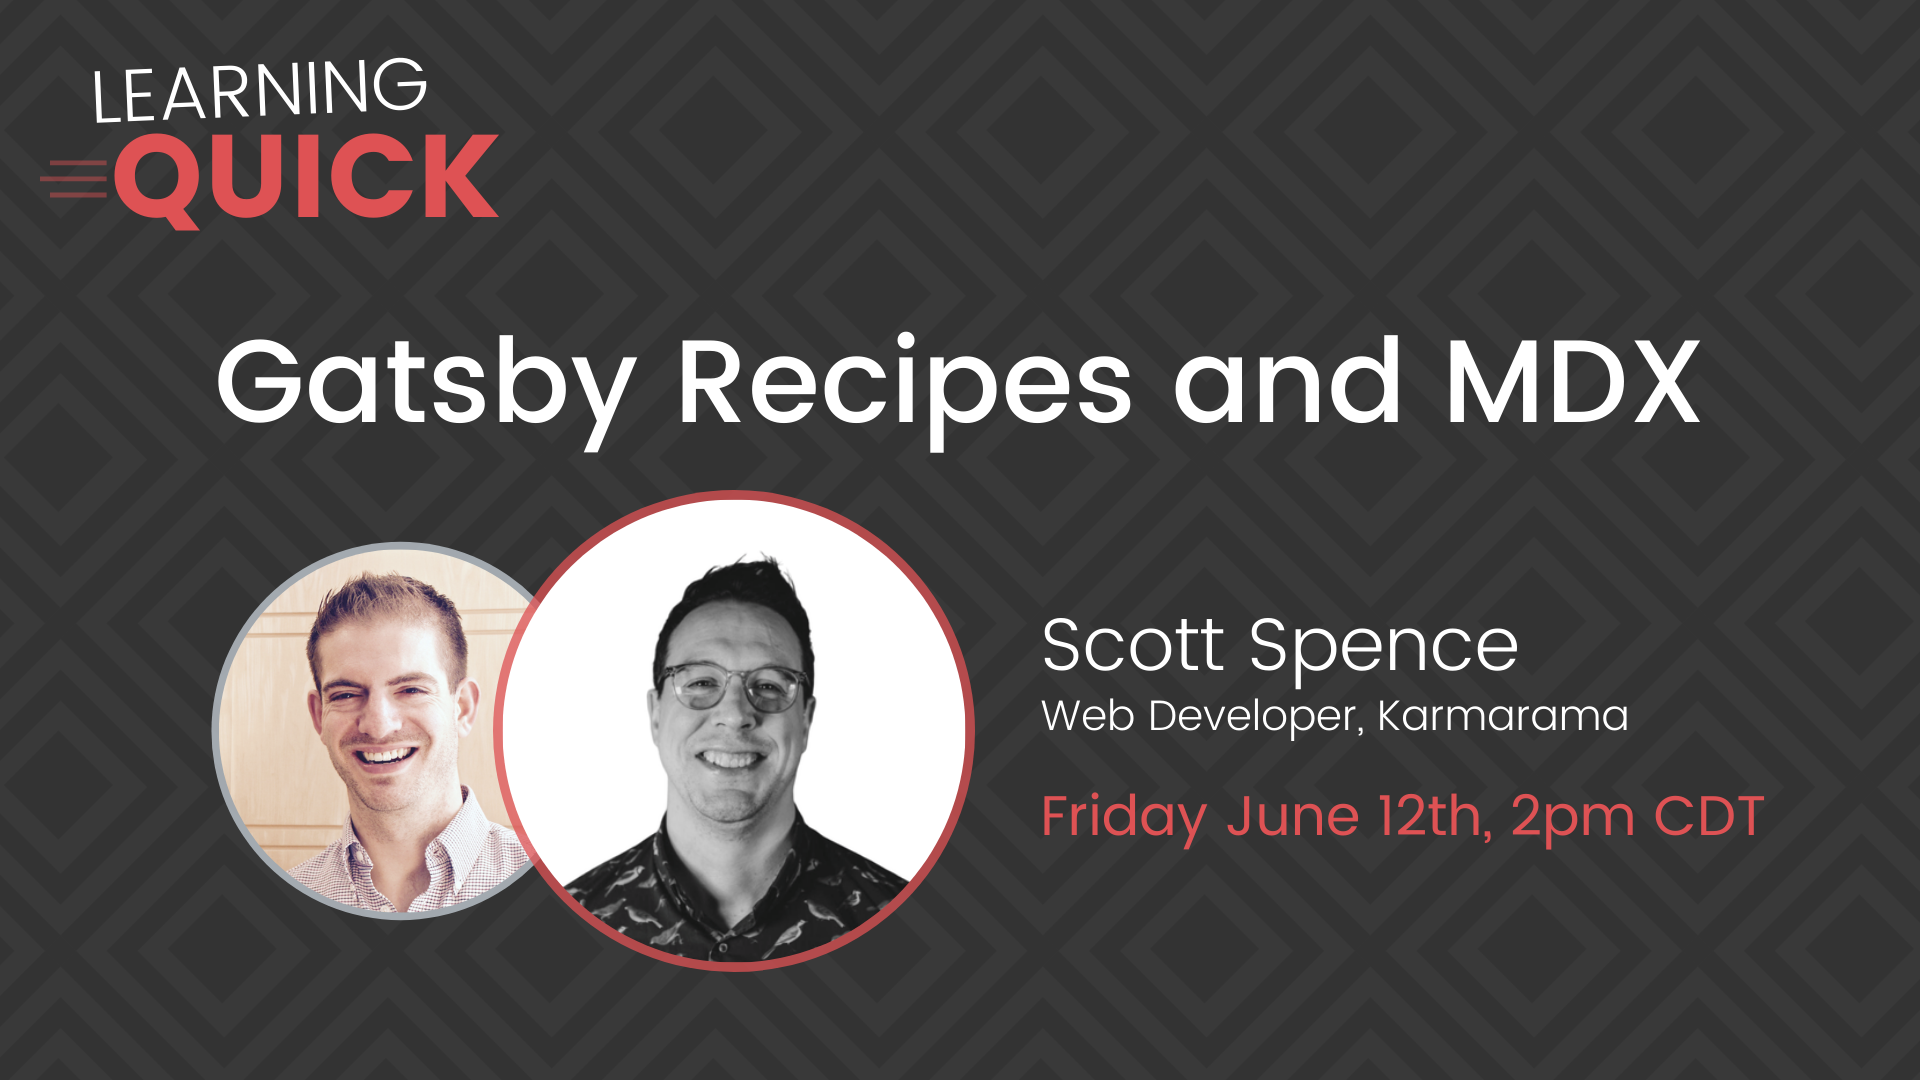 Gatsby Recipes and MDX with Scott Spence